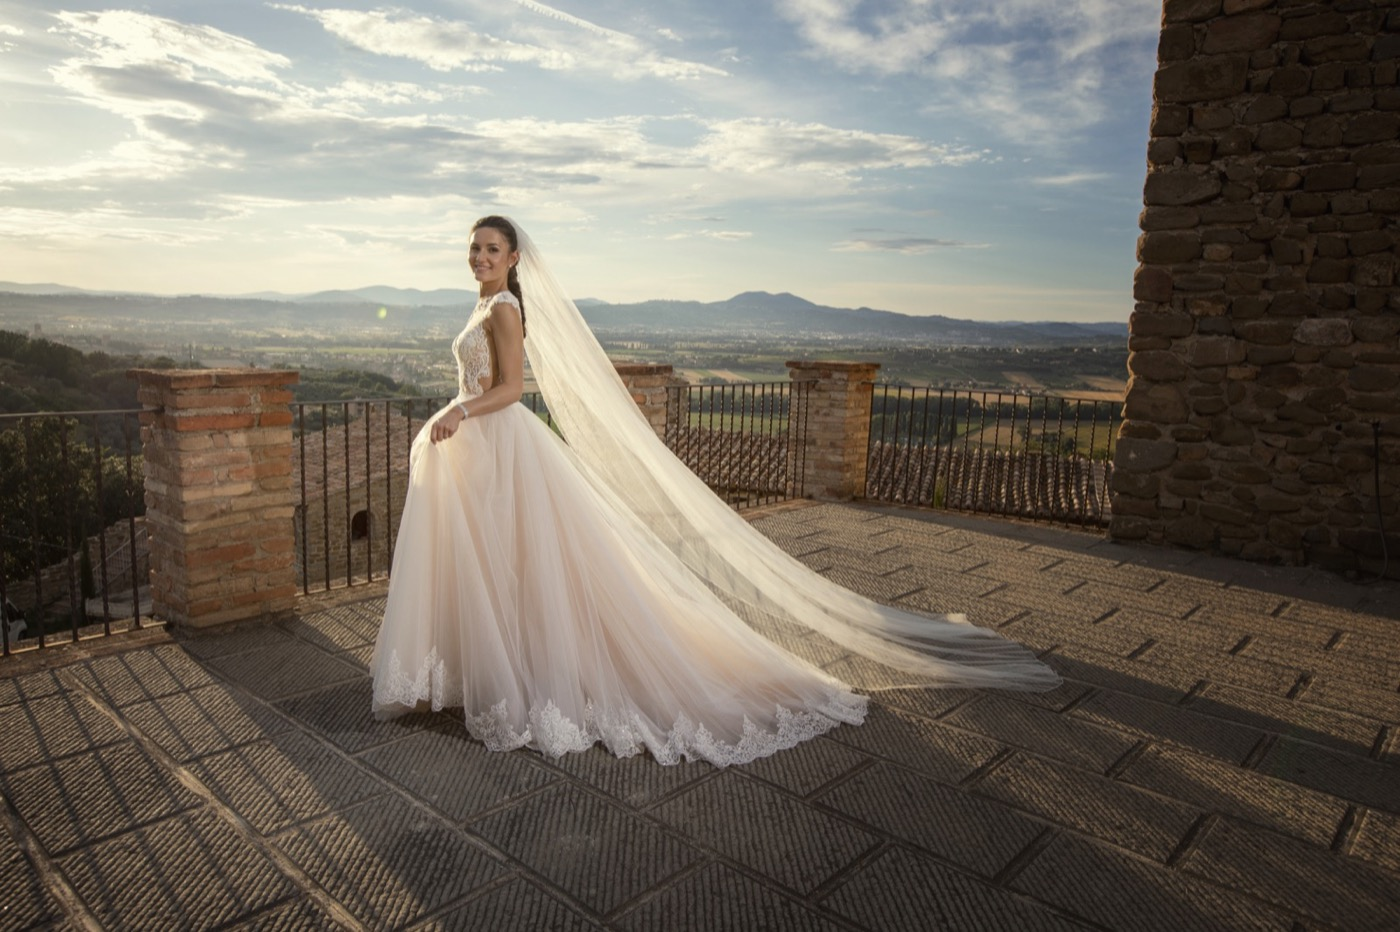 Claudio-Coppola-wedding-photographer-castello-rosciano-torgiano-52